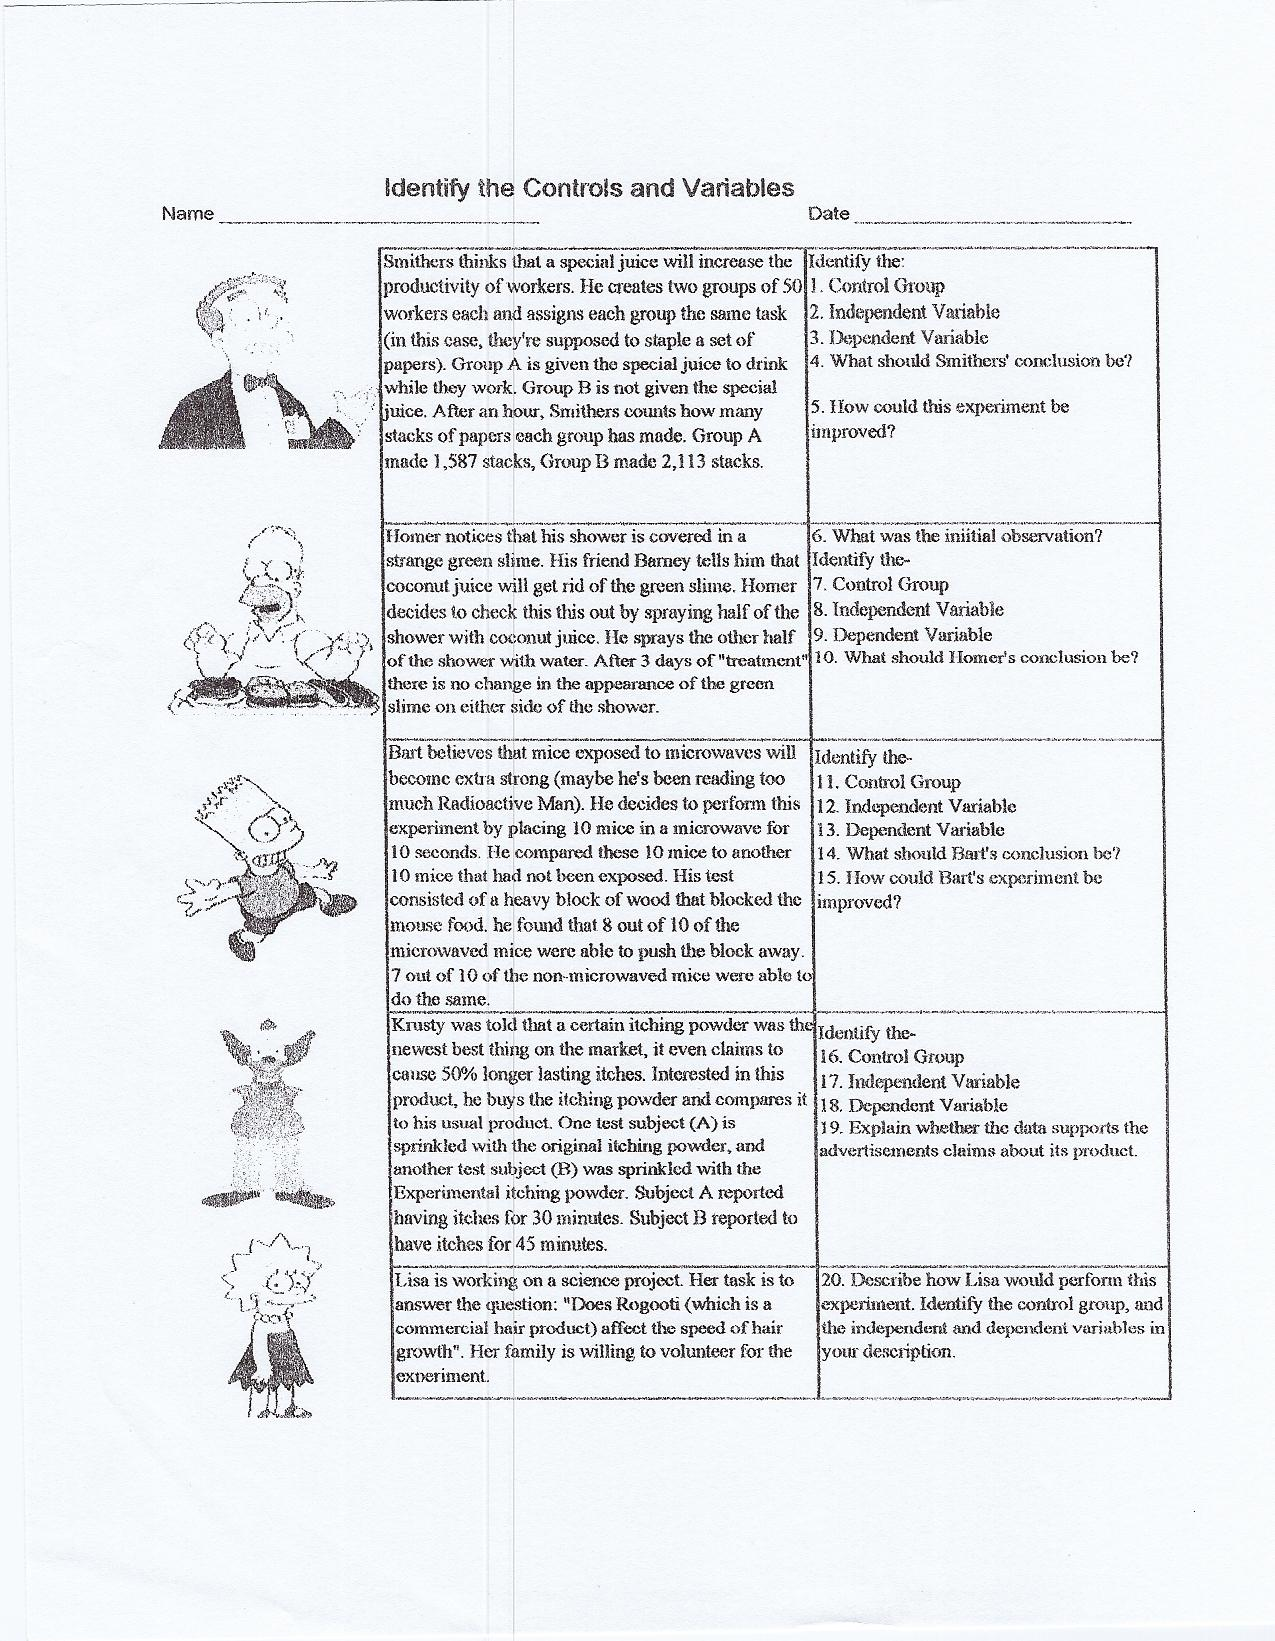 hight resolution of Scientific Method Practice Worksheet Answers - Nidecmege